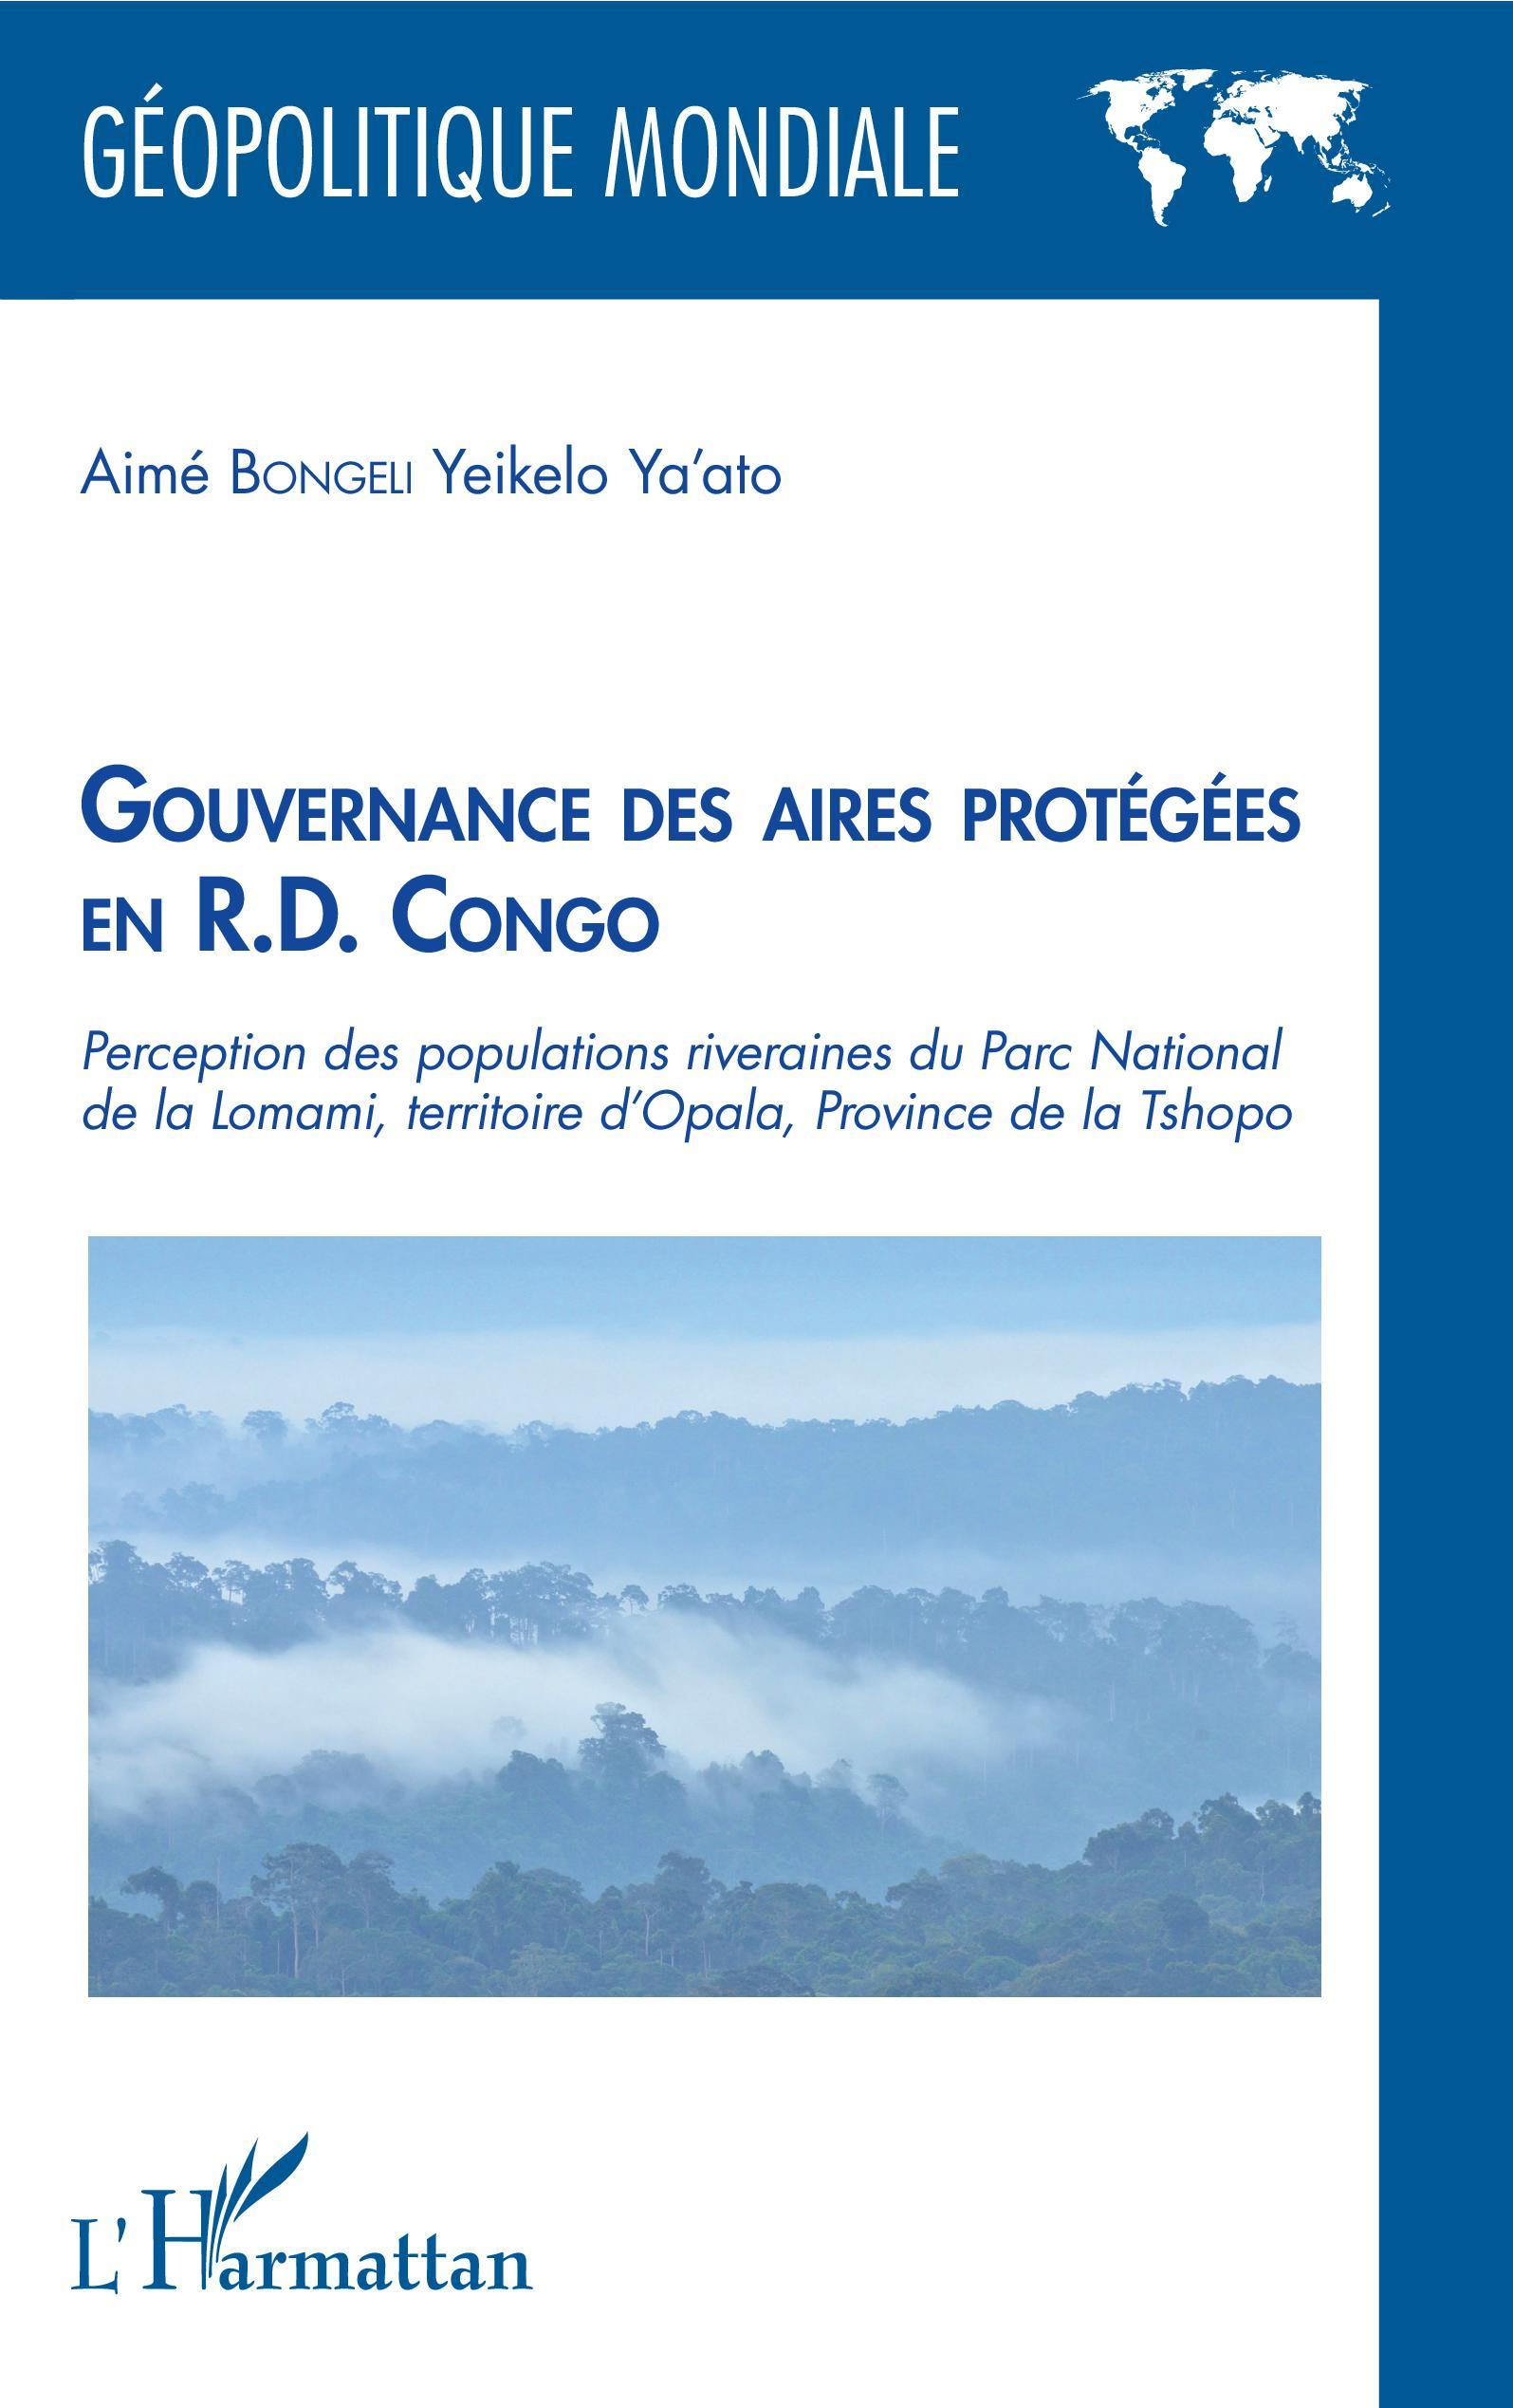 GOUVERNANCE DES AIRES PROTEGEES EN R.D. CONGO - PERCEPTION DES POPULATIONS RIVERAINES DU PARC NATION